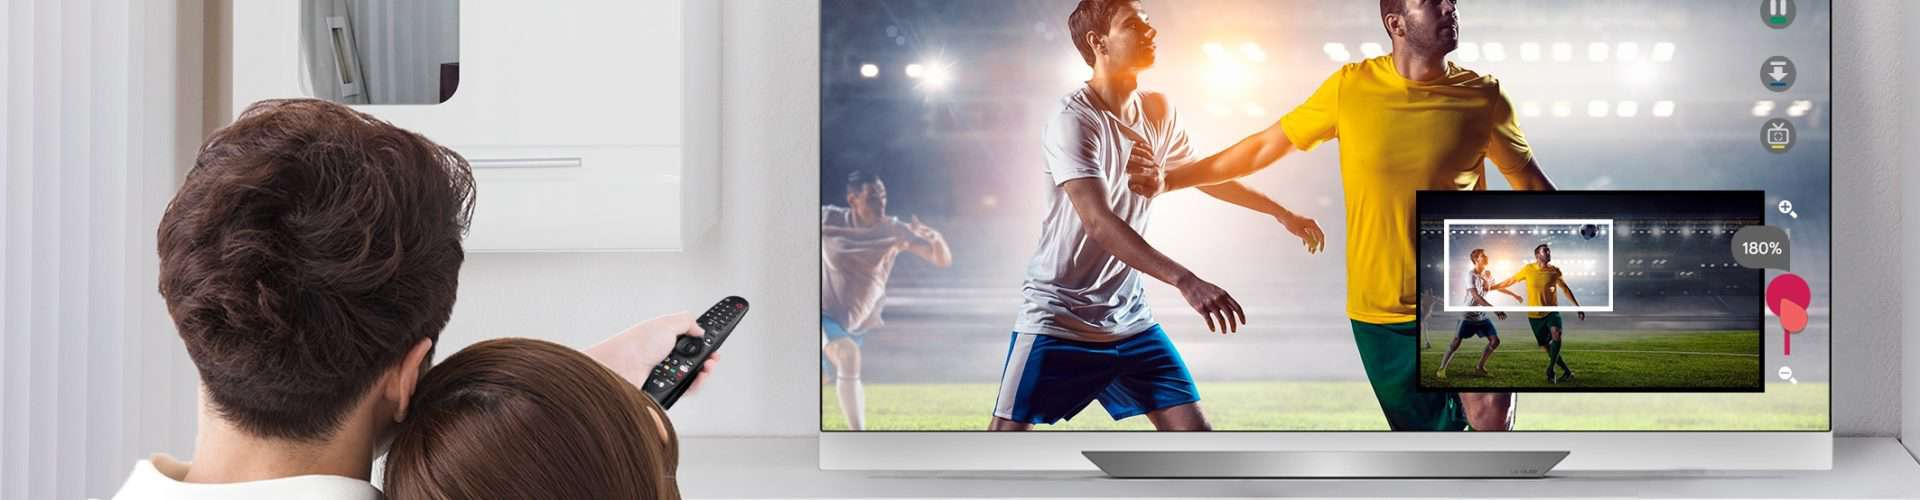 How To Hook Up Your Cable To TV